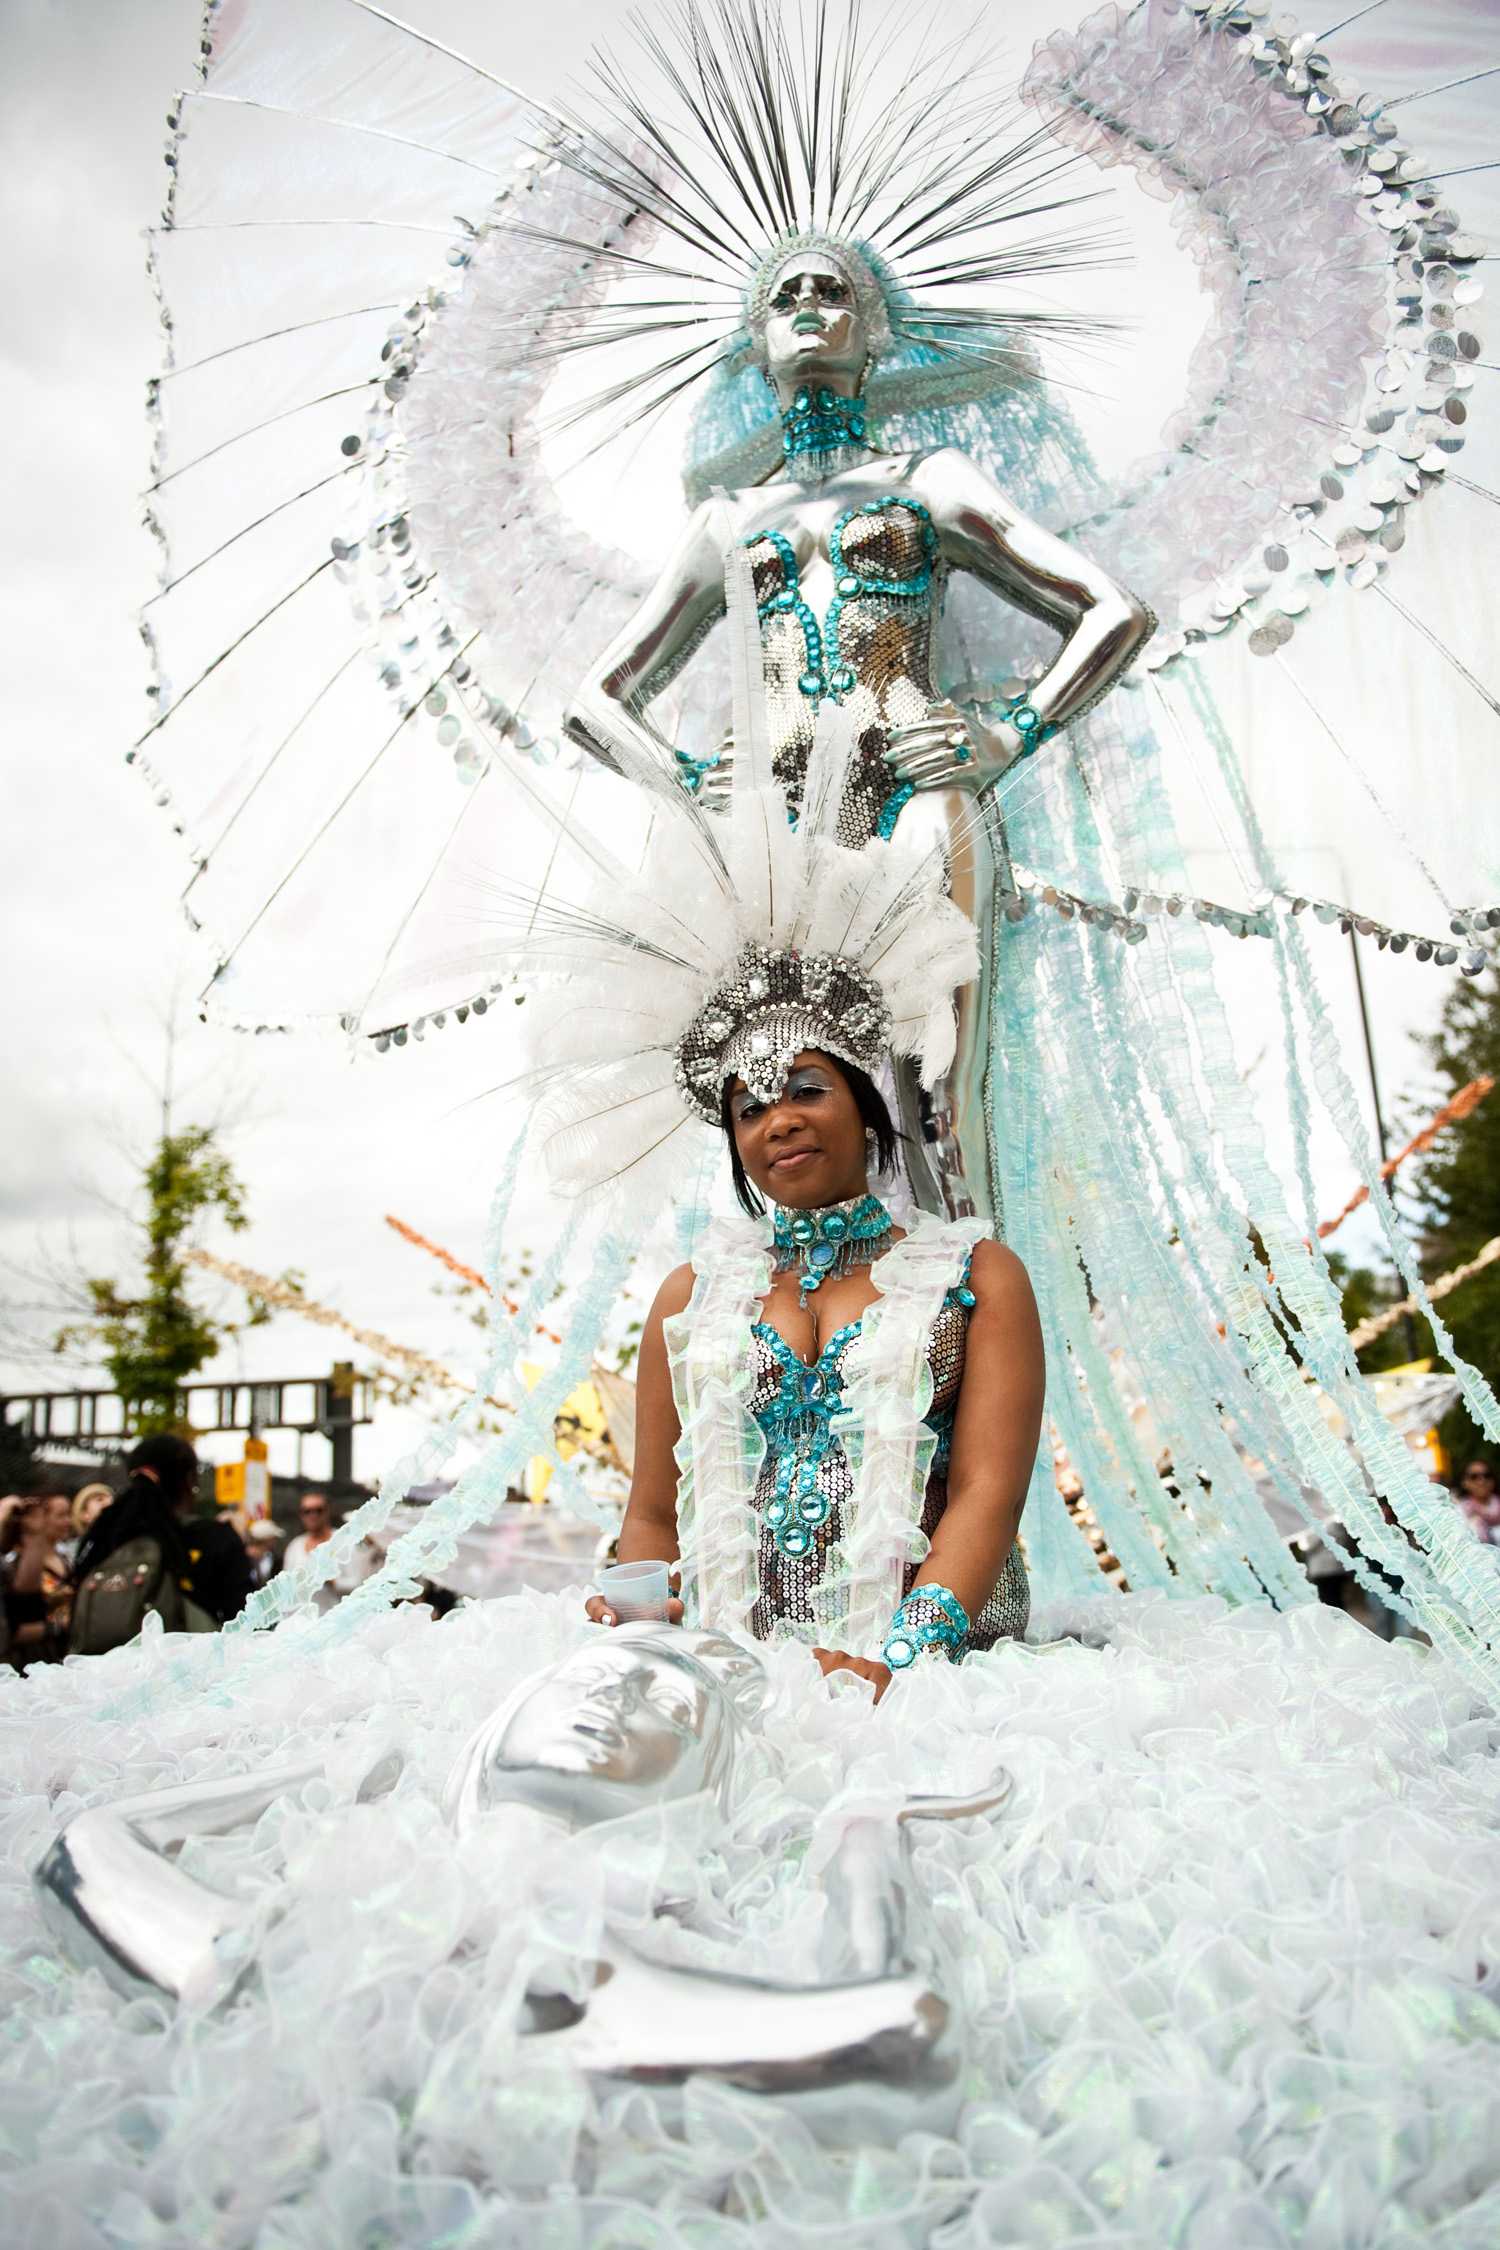 Carnival_the_rest_17